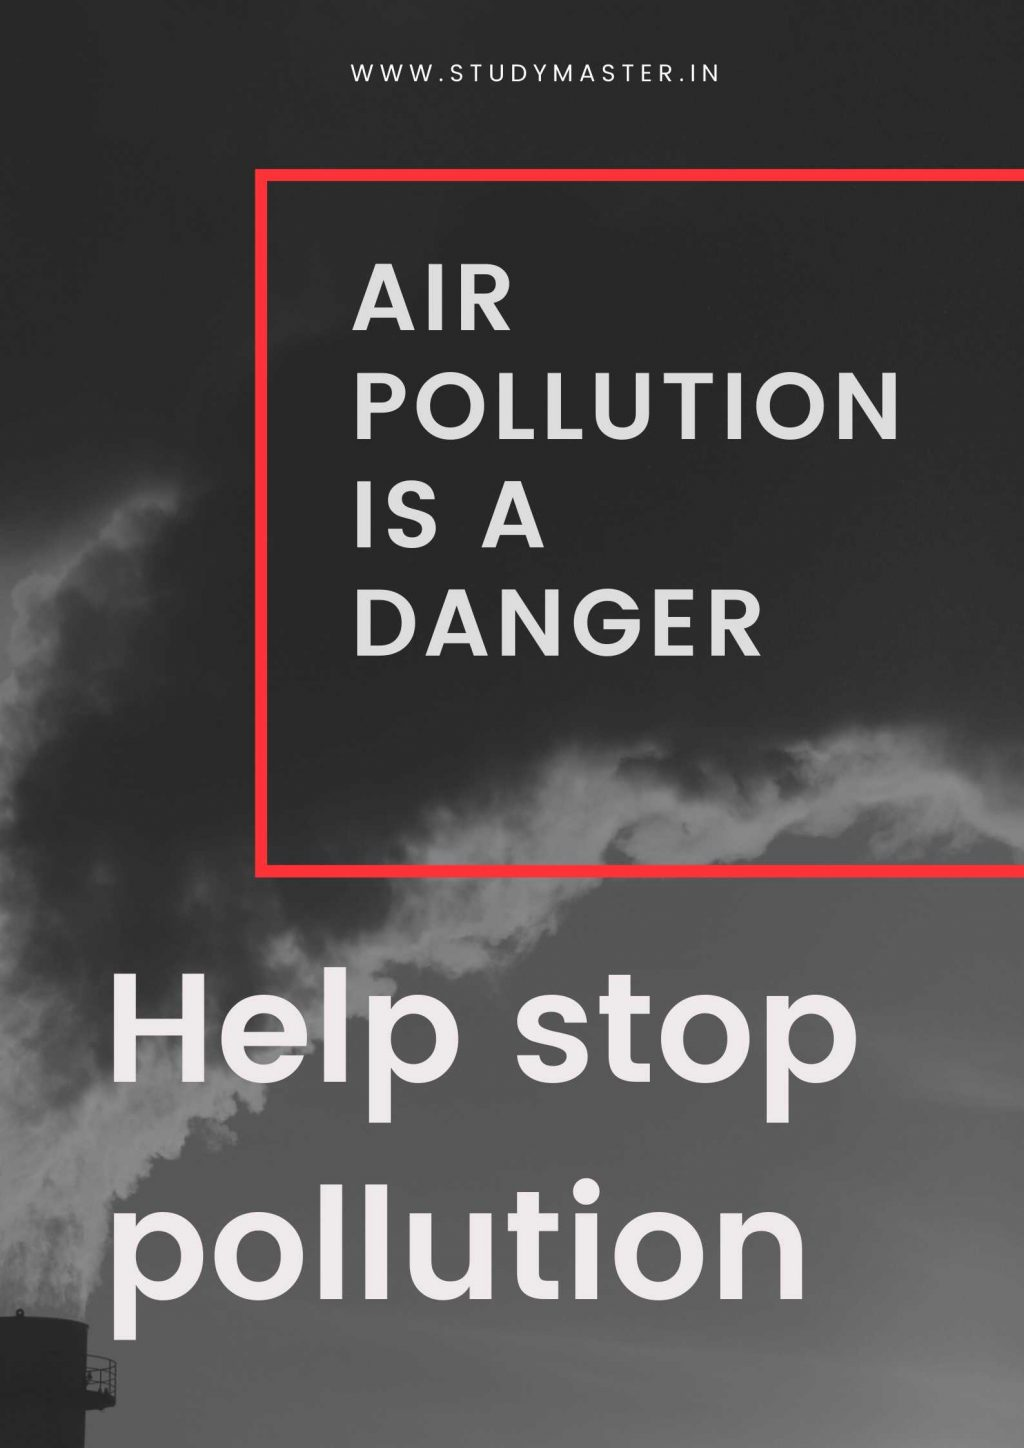 pollution poster making